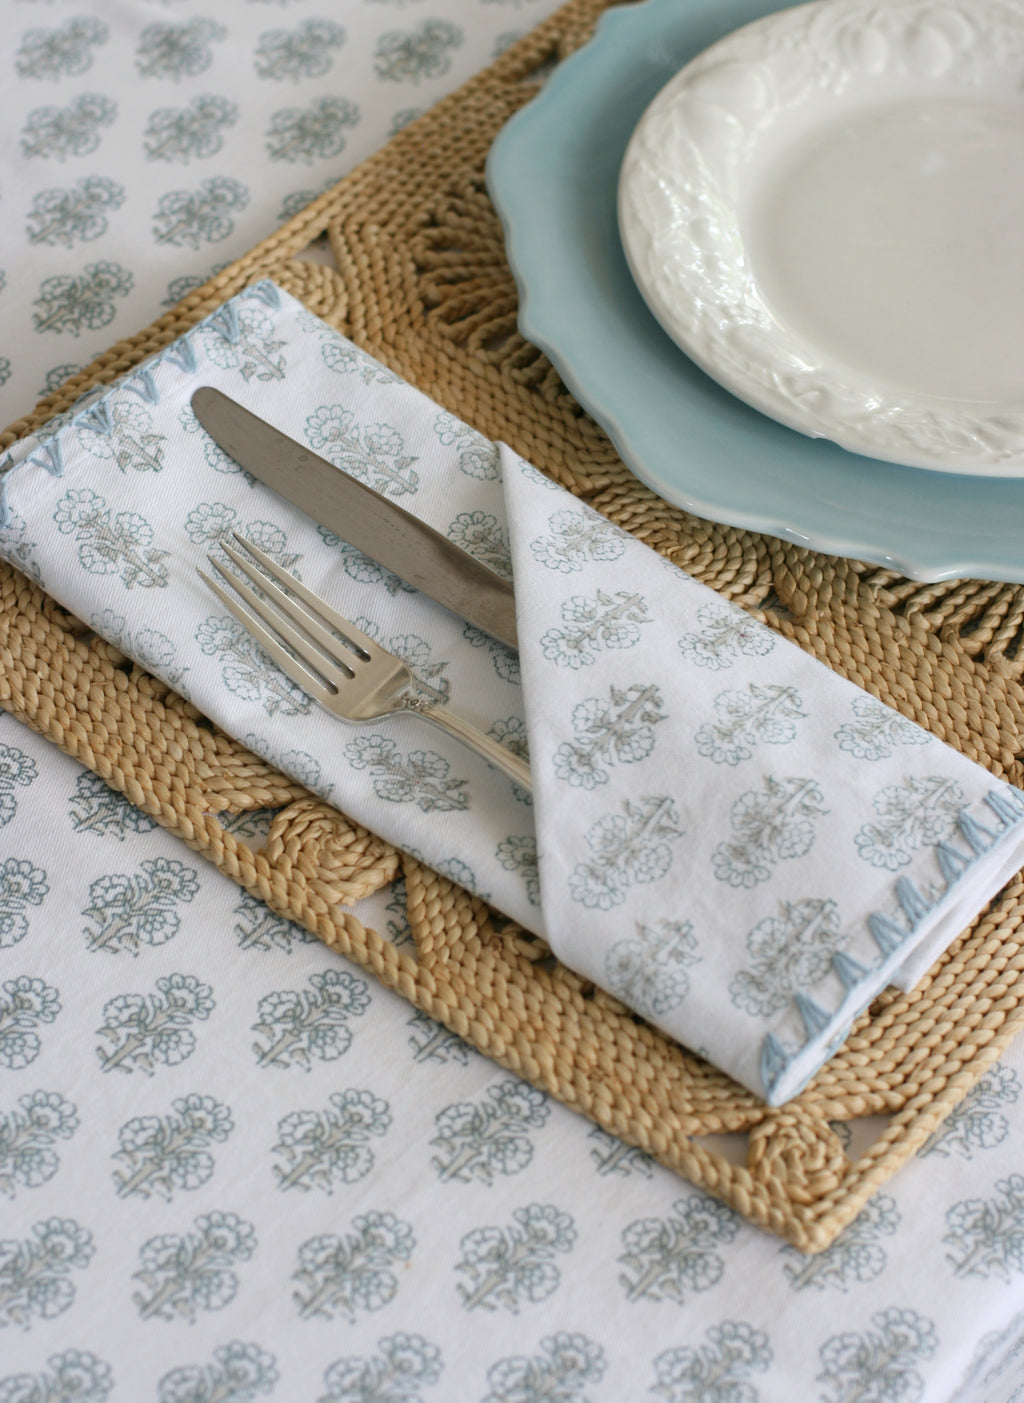 Talelayo Napkins - set of 4 in Sparrow